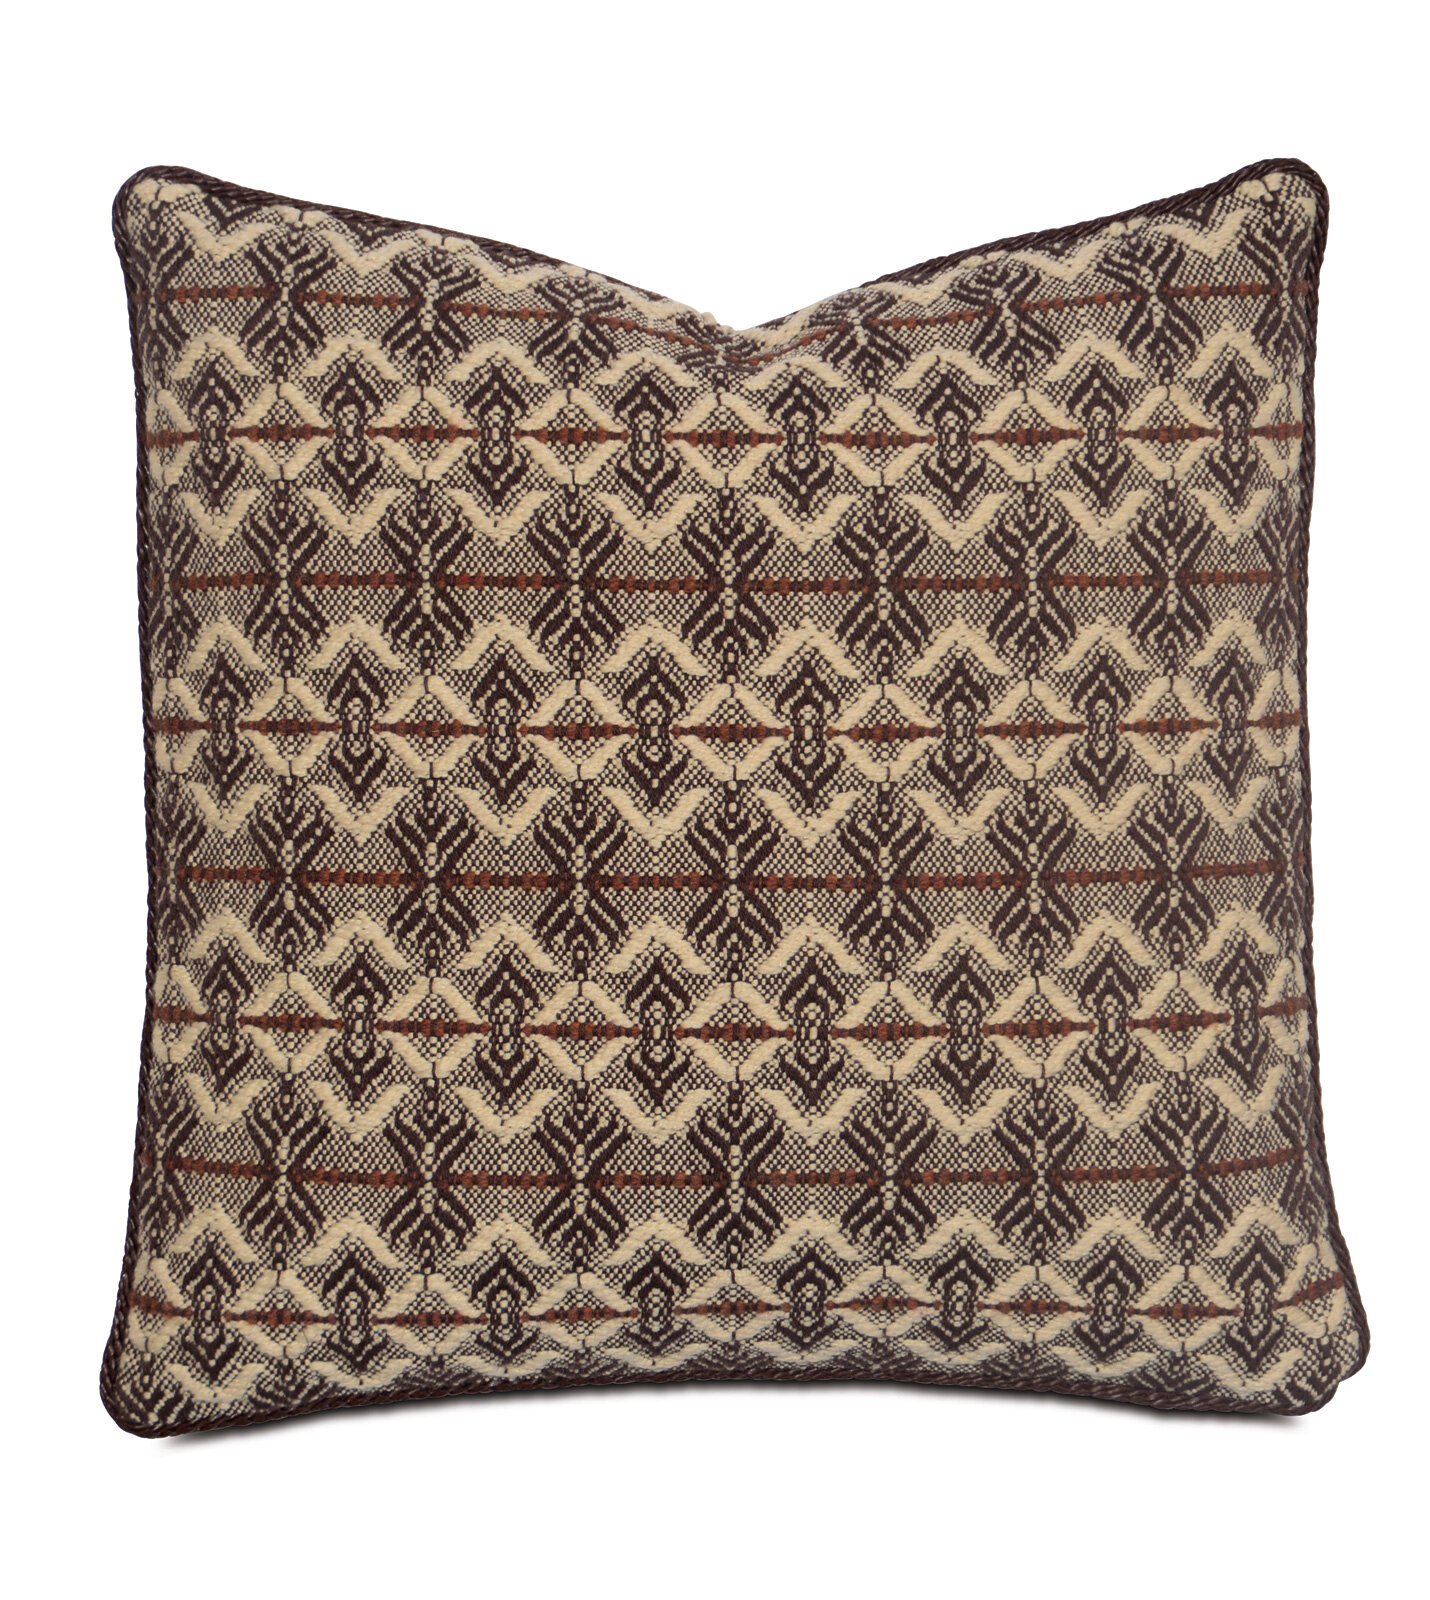 Celerie kemble canyon clay textured southwestern throw pillow wayfair